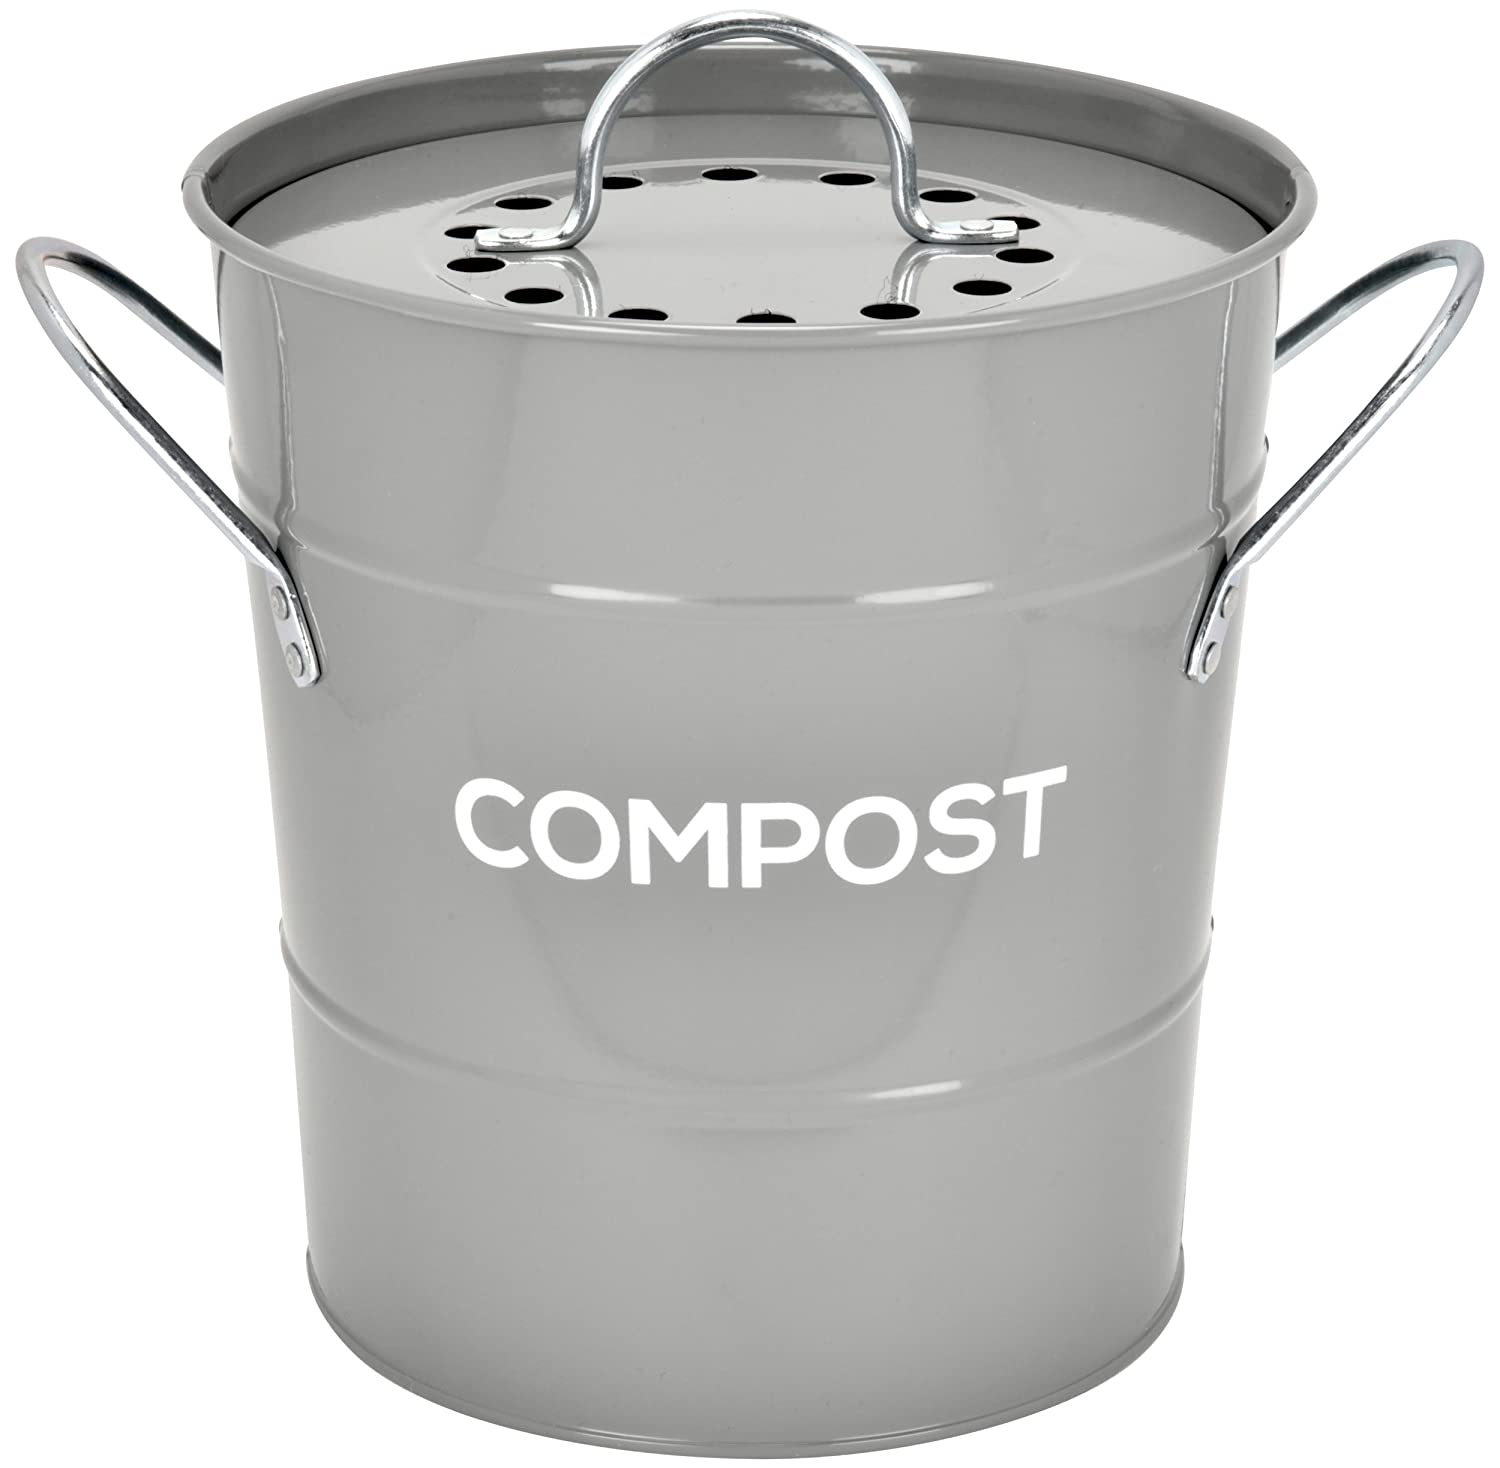 INDOOR KITCHEN COMPOST BIN by Spigo, Great for Food Scraps, Includes Charcoal Filter For Odor Absorbing, Removable Clean Plastic Bucket, Handles, Durable Stainless Retro Design, 1 Gallon, Grey